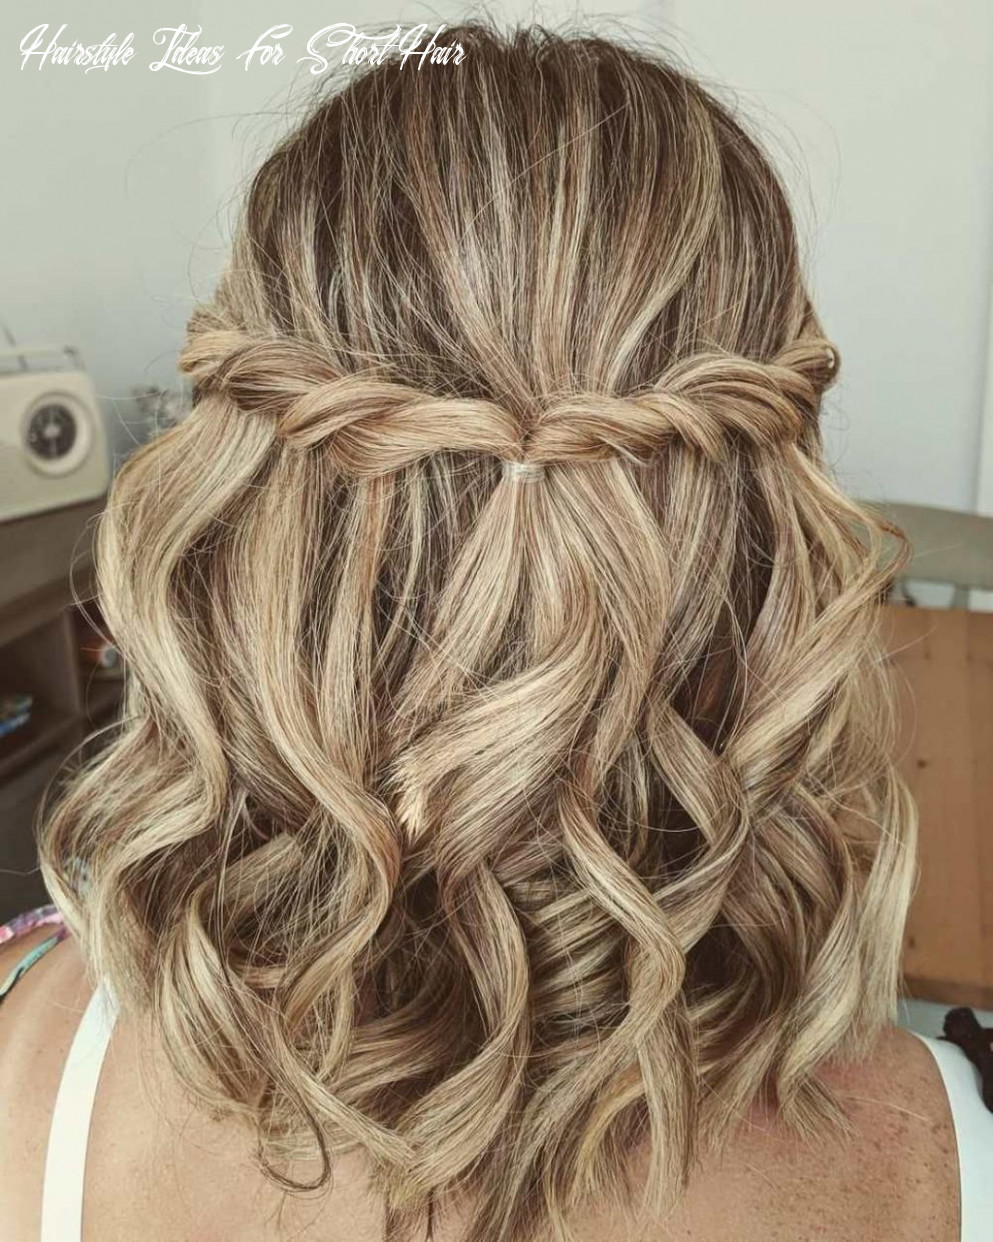 11 newest short formal hairstyles ideas for women | cabelo curto